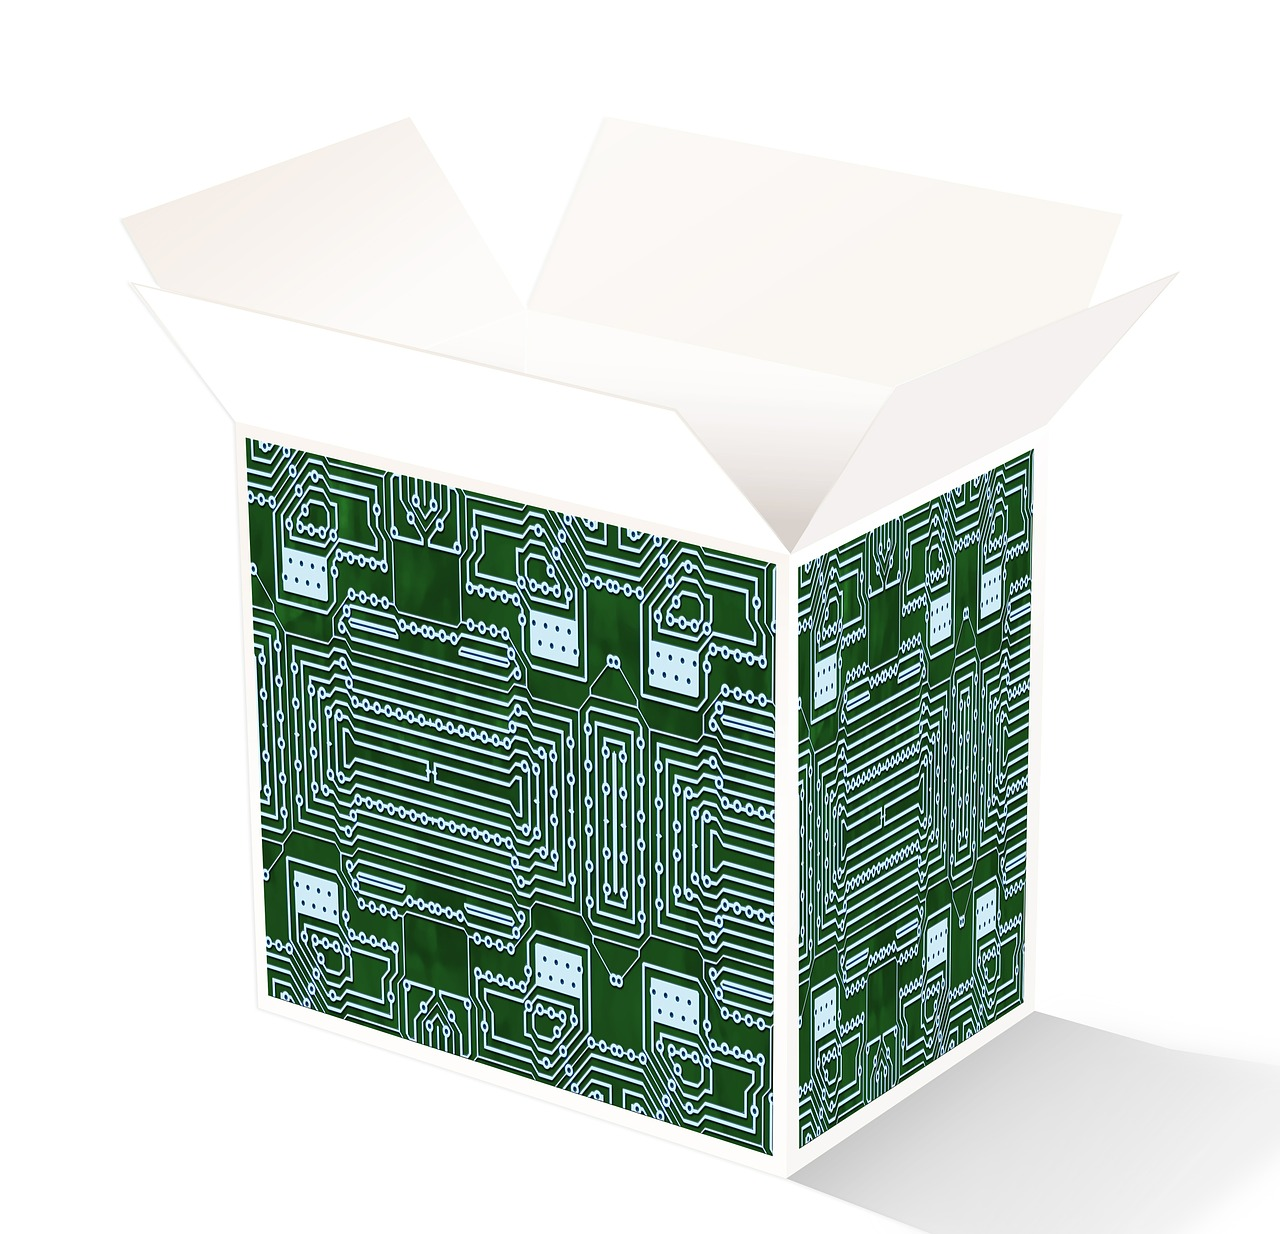 Multilayer Printed Circuit Board Pcb Amitron Design Designer Quickturn When Will My Pcbs Ship